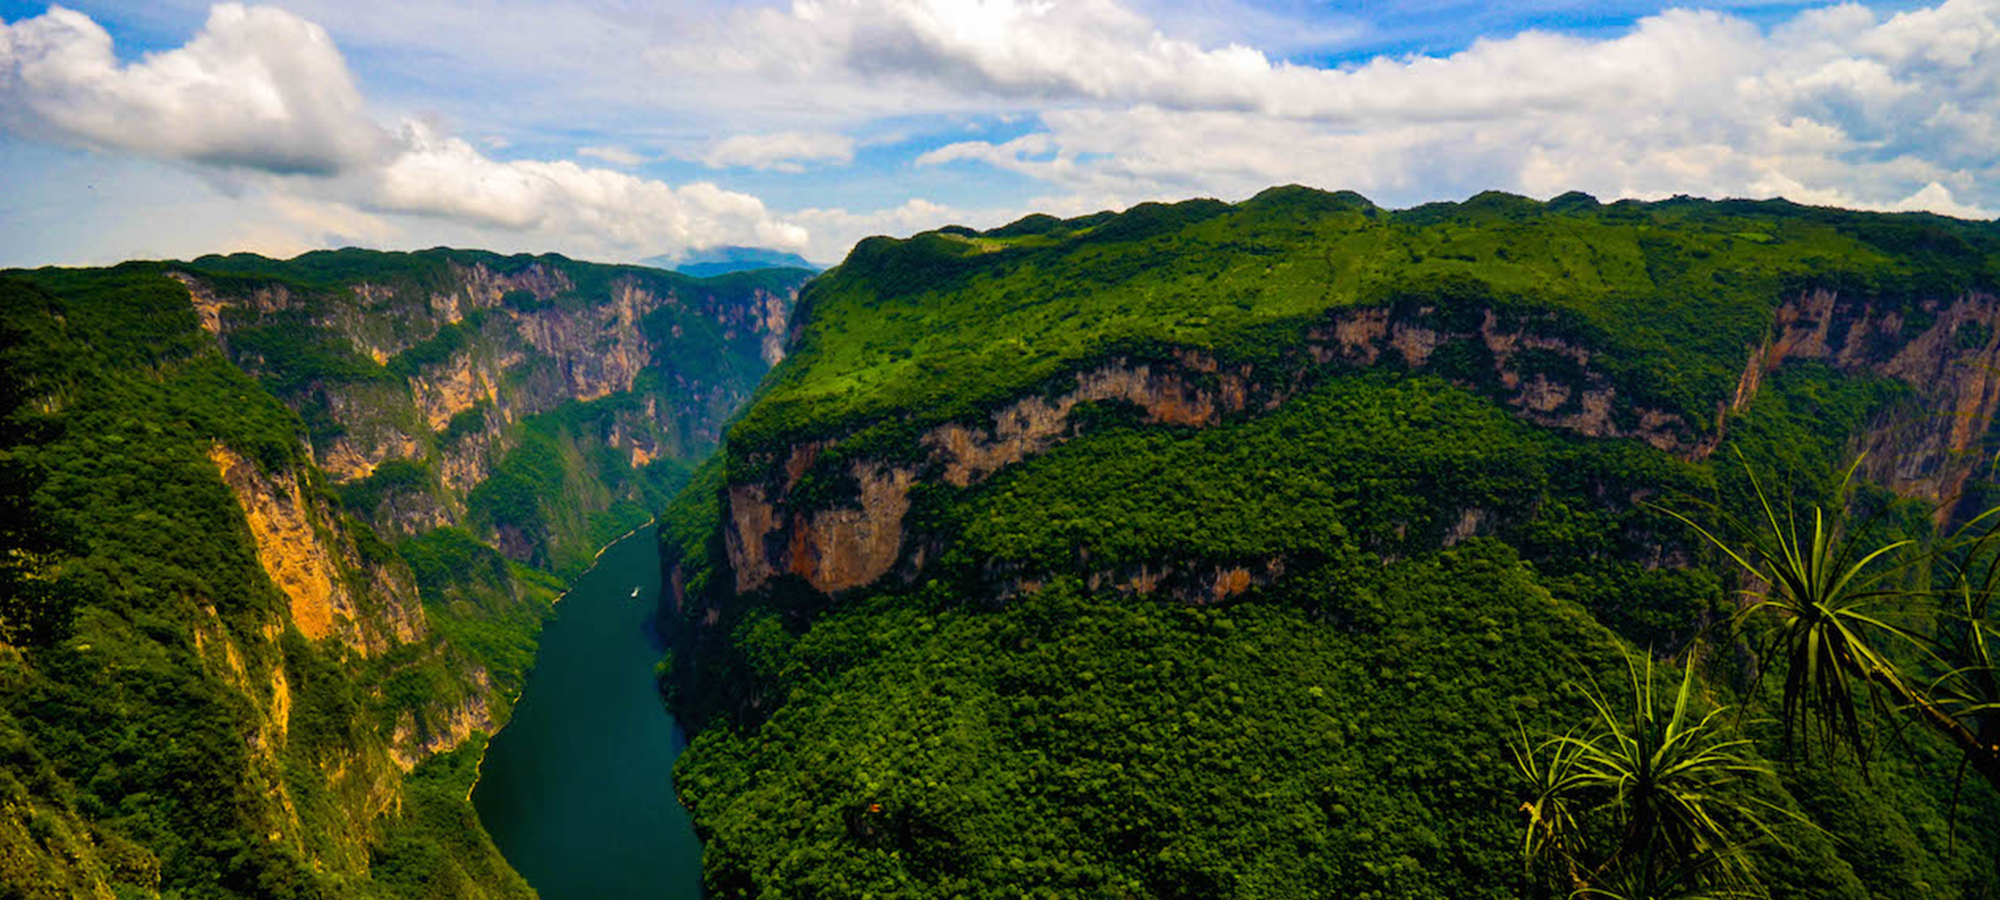 can%cc%83on-sumidero-chiapas